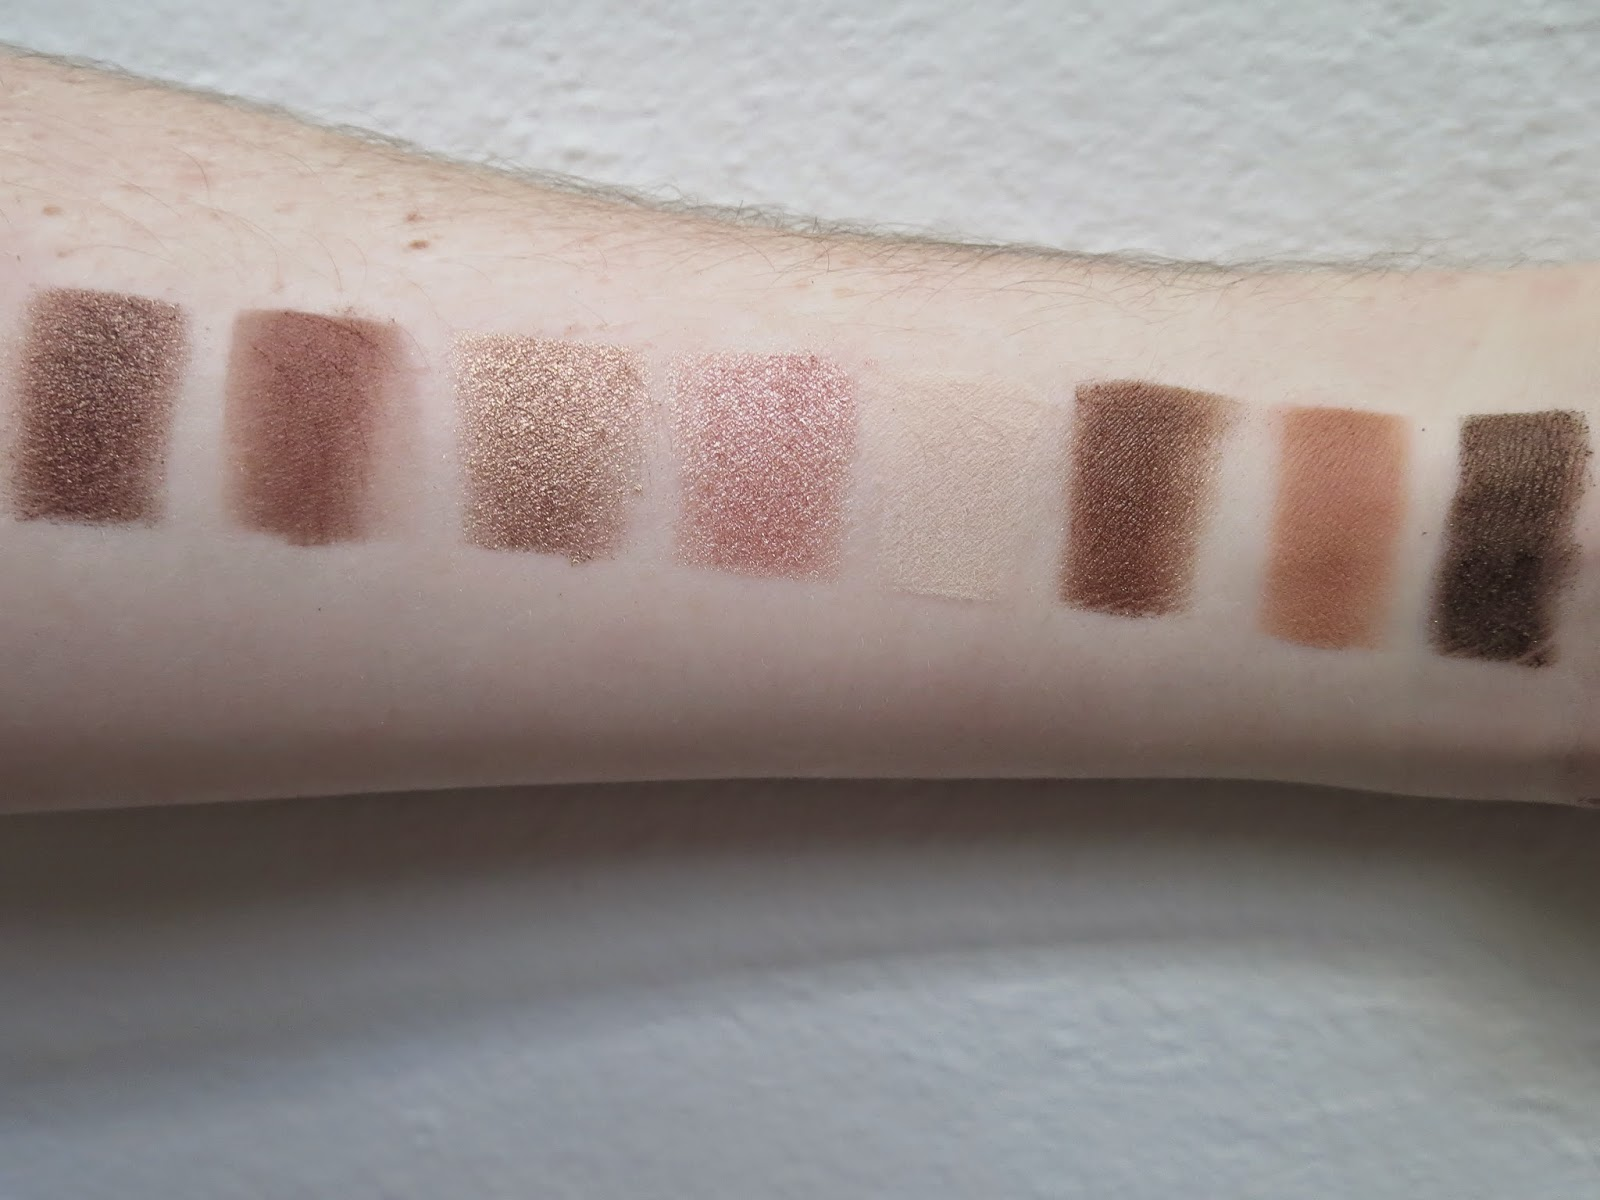 a picture of Too Faced Chocolate Bar ; Haute Chocolate, Semi-Sweet, Creme Brulee, Marzipan, White Chocolate, Hazelnut, Salted Caramel, Gilded Ganache (swatch)